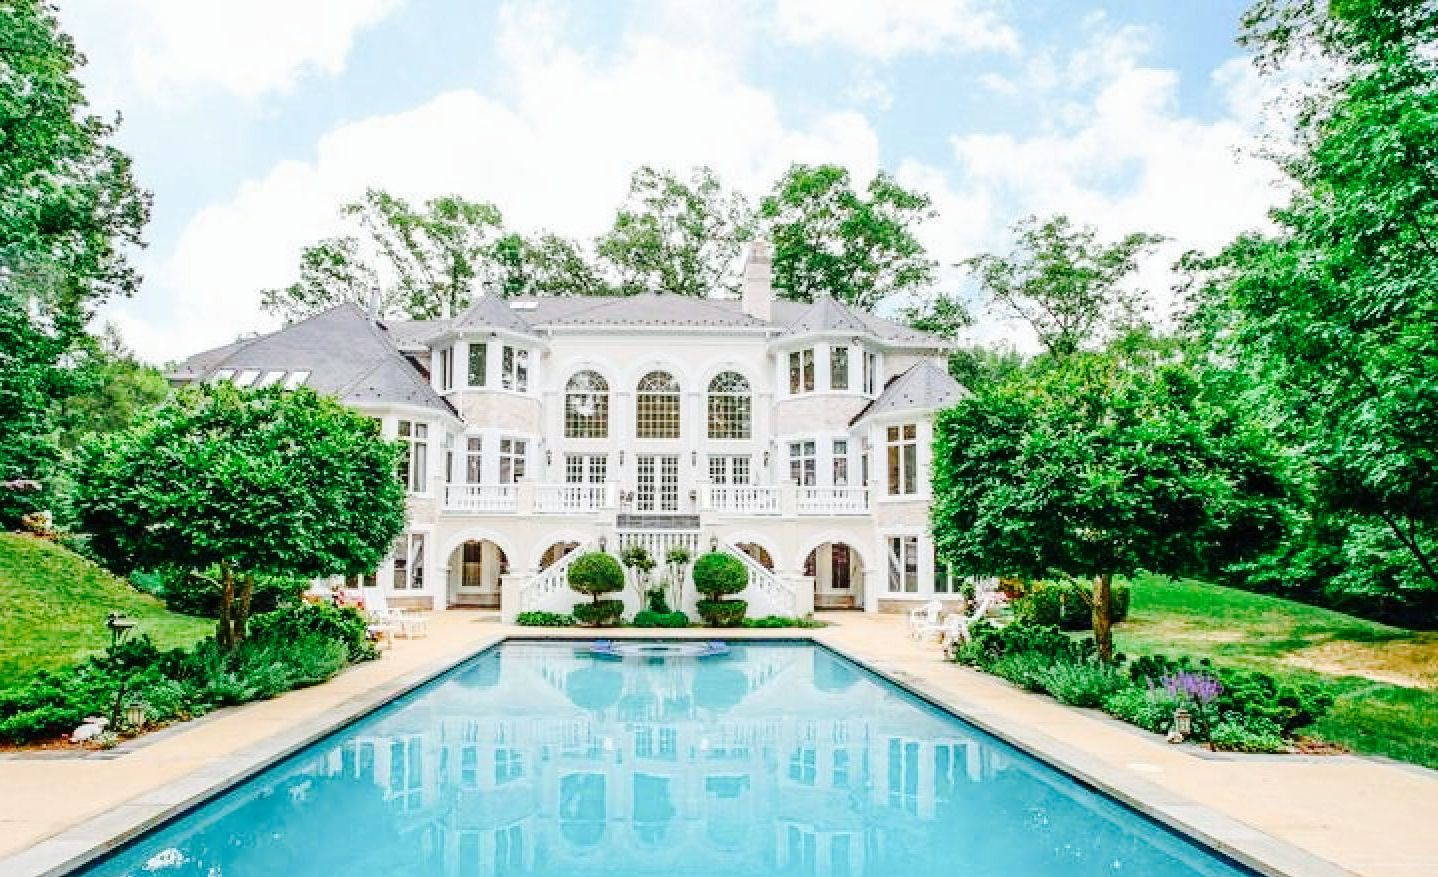 Huge Houses With Pools pretty white house! love the hugee pool | dream home | pinterest